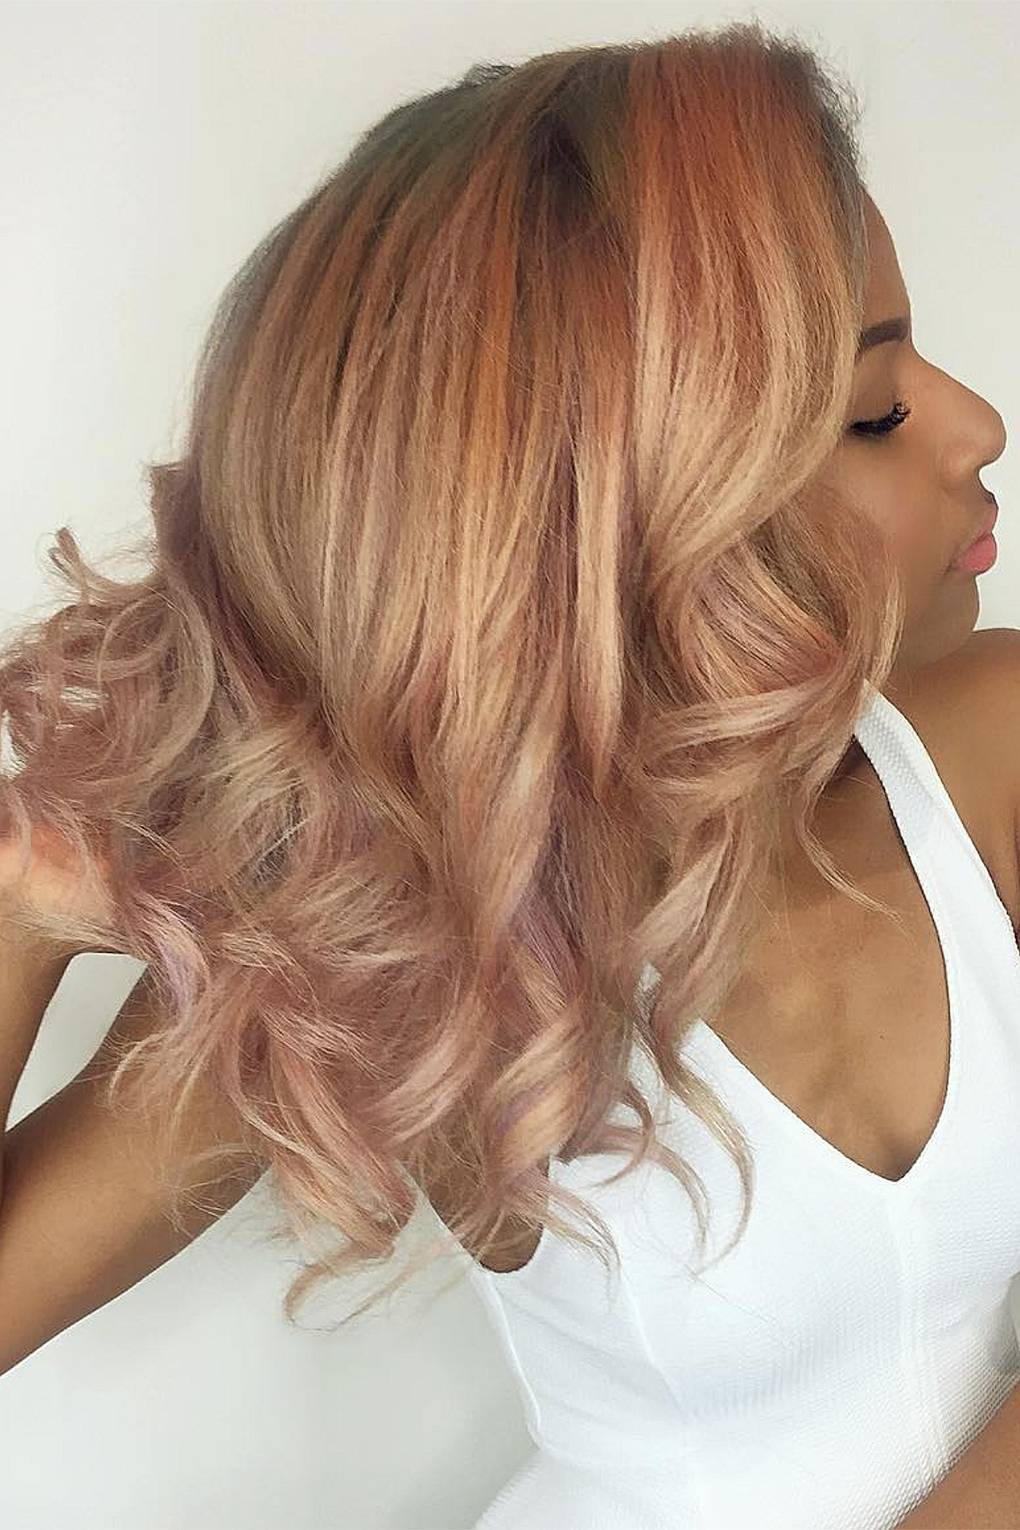 Rose Gold Hair Colour: The Trend For The Perfect Pink Hair Shades ...